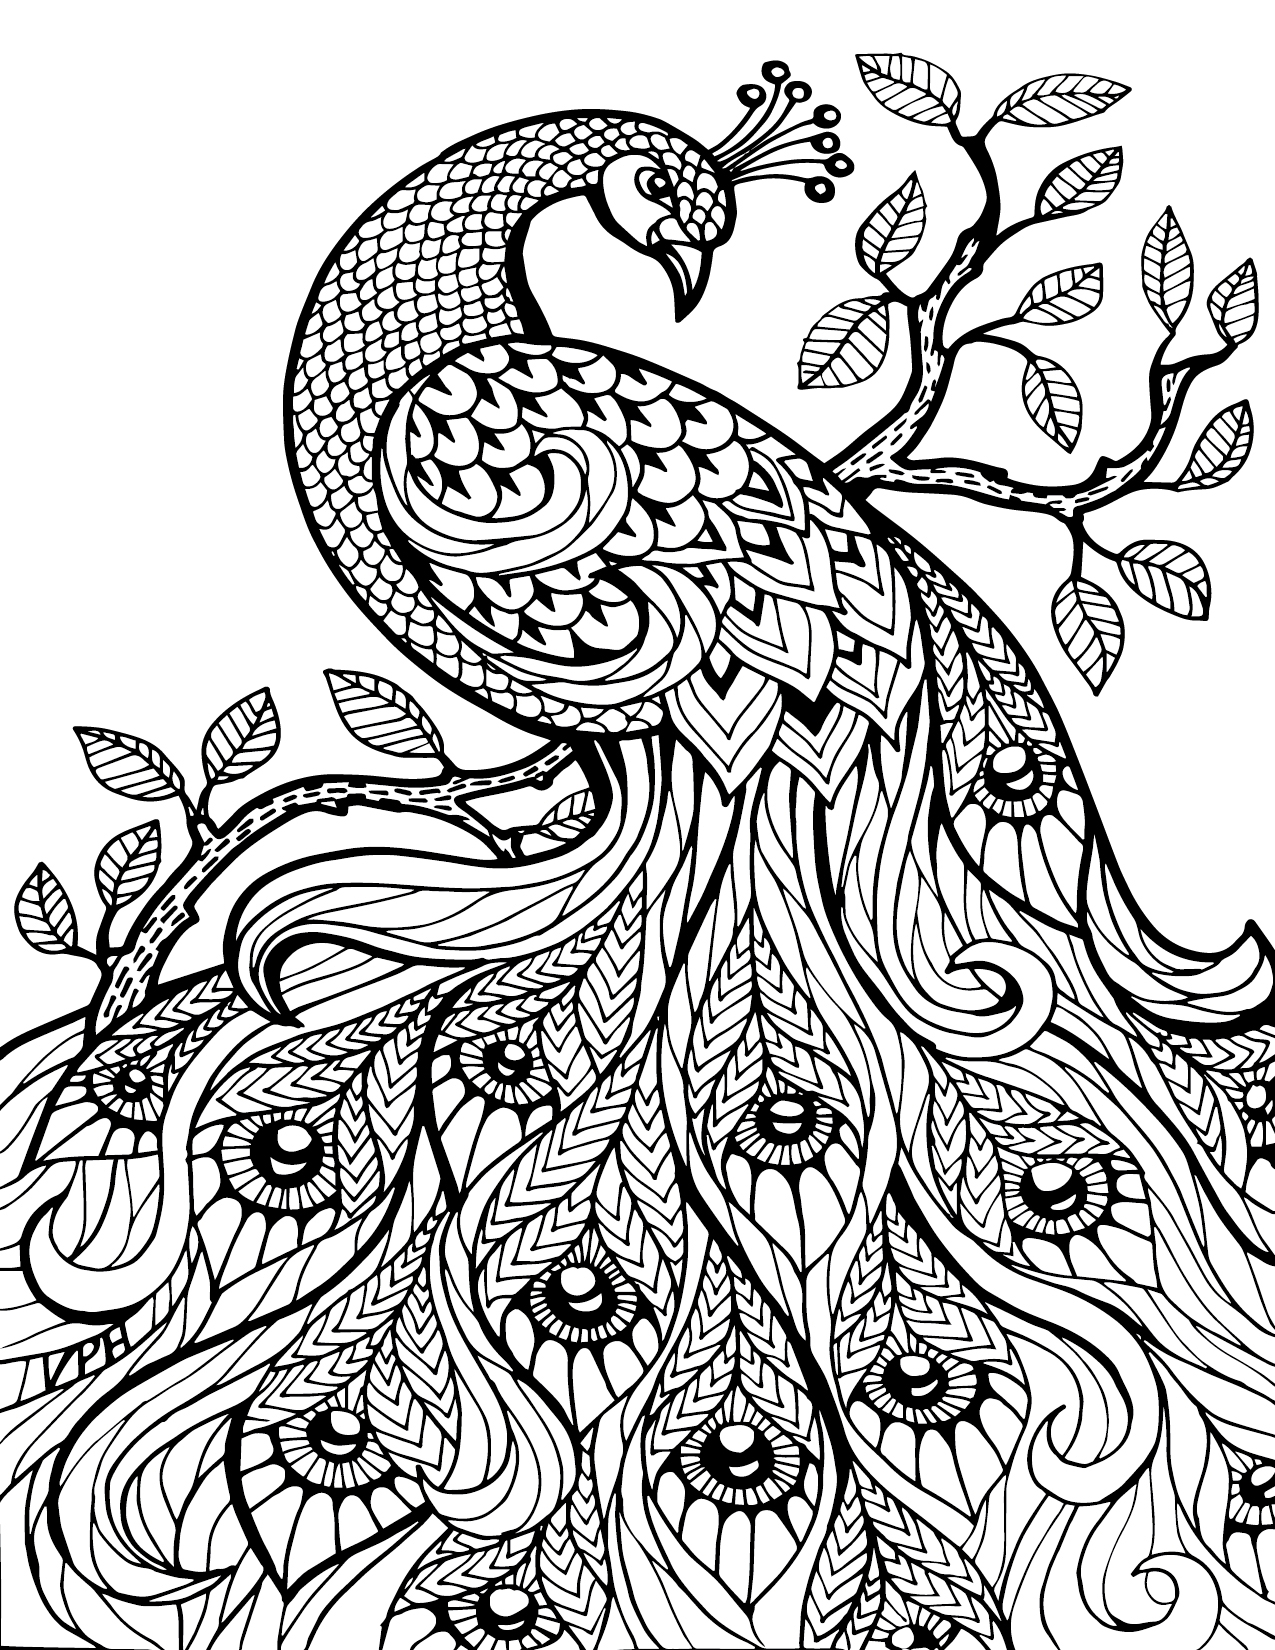 1275x1650 Detailed Coloring Page Emerging Pages And With For Arilitv